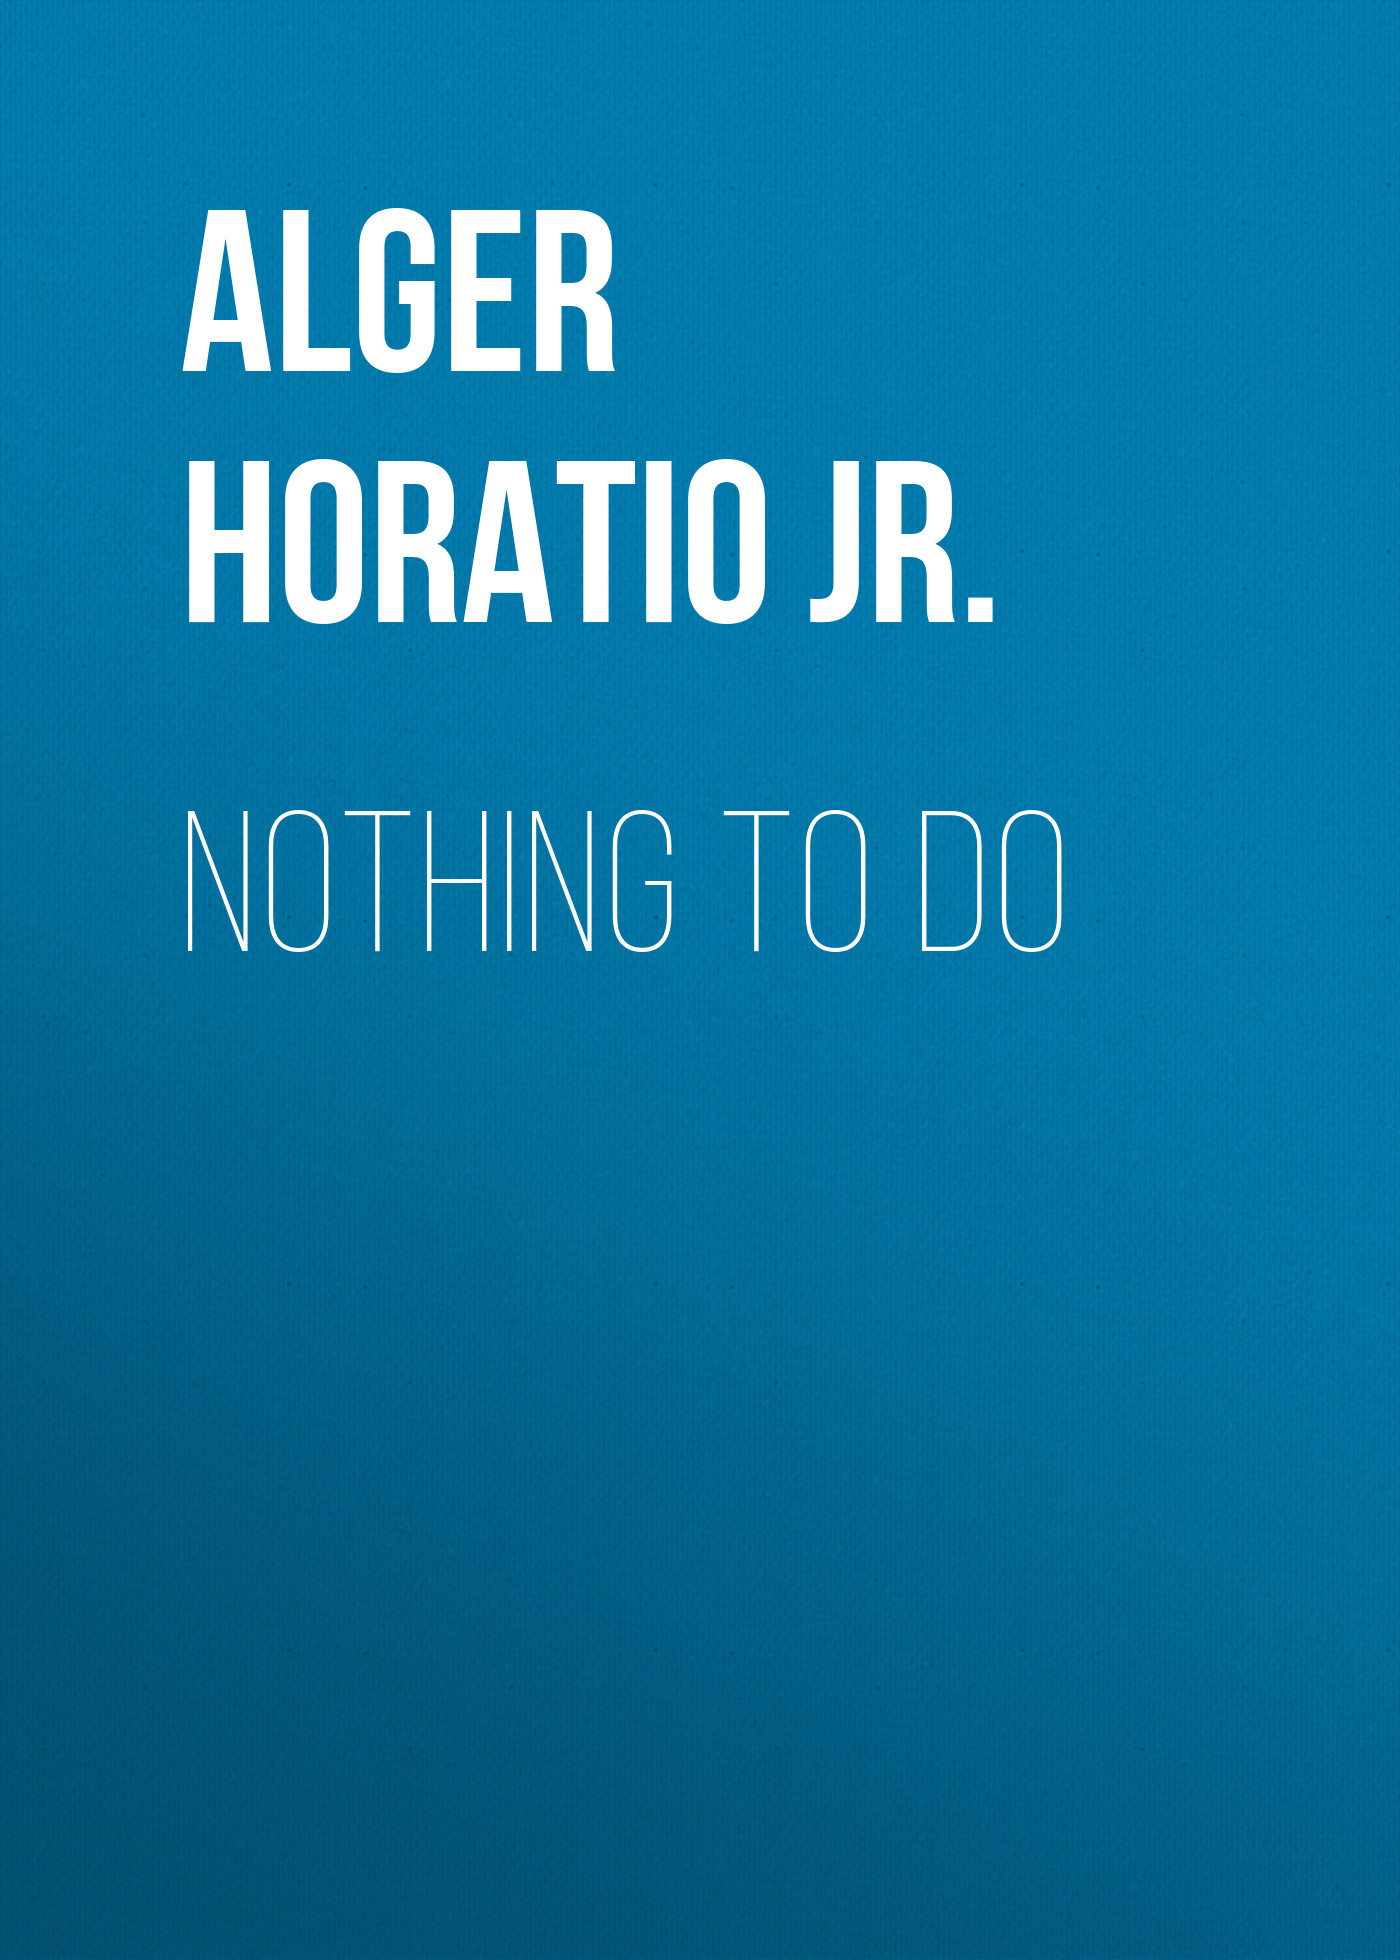 Alger Horatio Jr. Nothing to Do alger horatio jr rough and ready